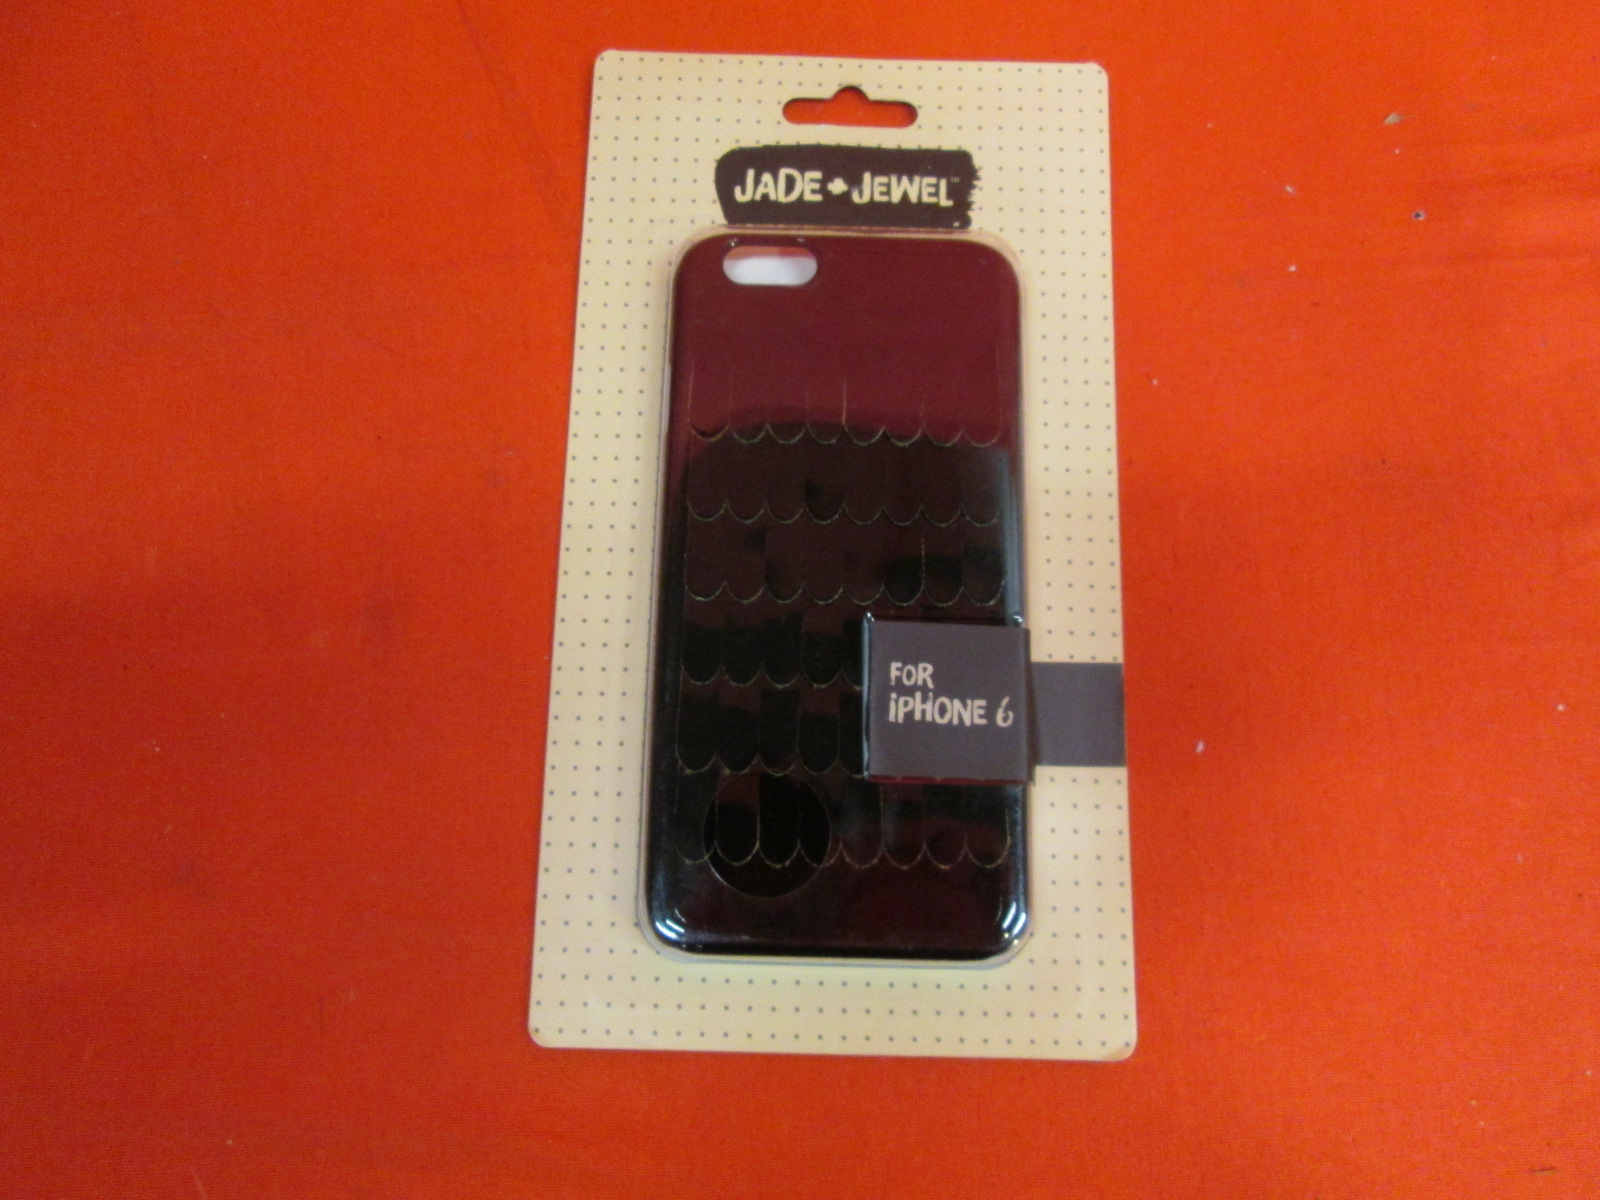 Jade And Jewel Cell Phone Case For iPhone 6 Black Faux Leather